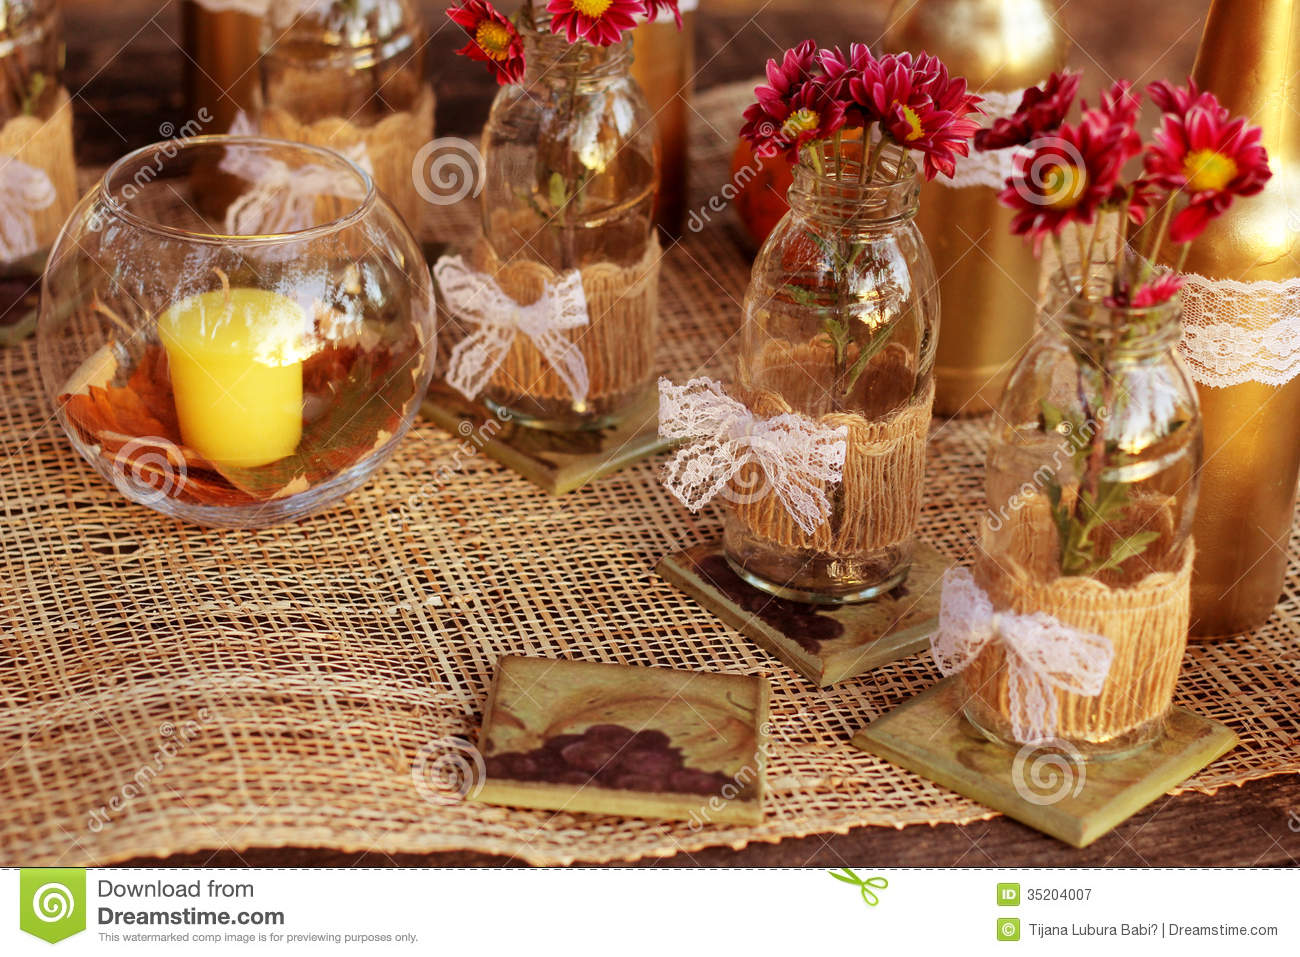 Superieur Fall And Table Decorations In Nature